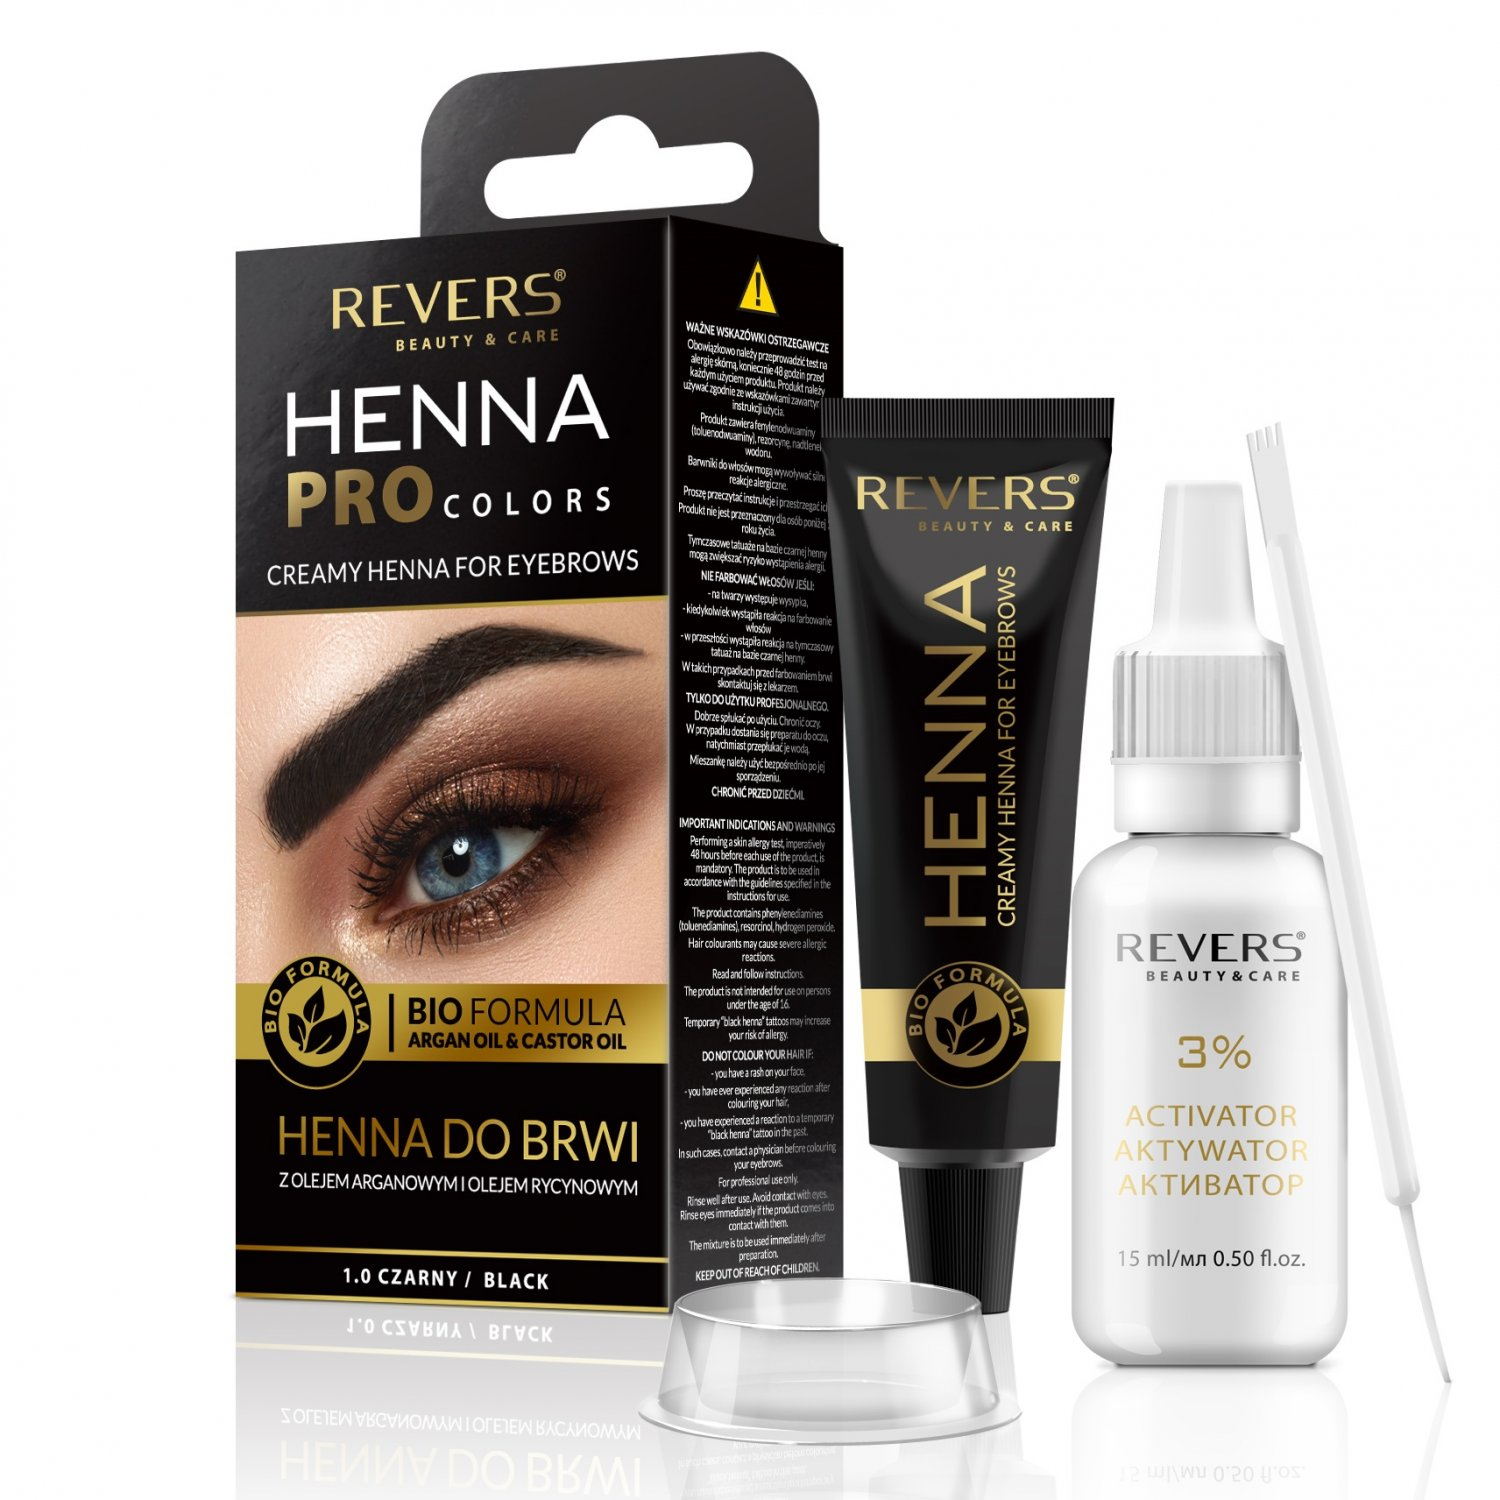 Henna for eyebrows Bio Formula Creamy henna with Argan oil & castor oil 1.0 Black